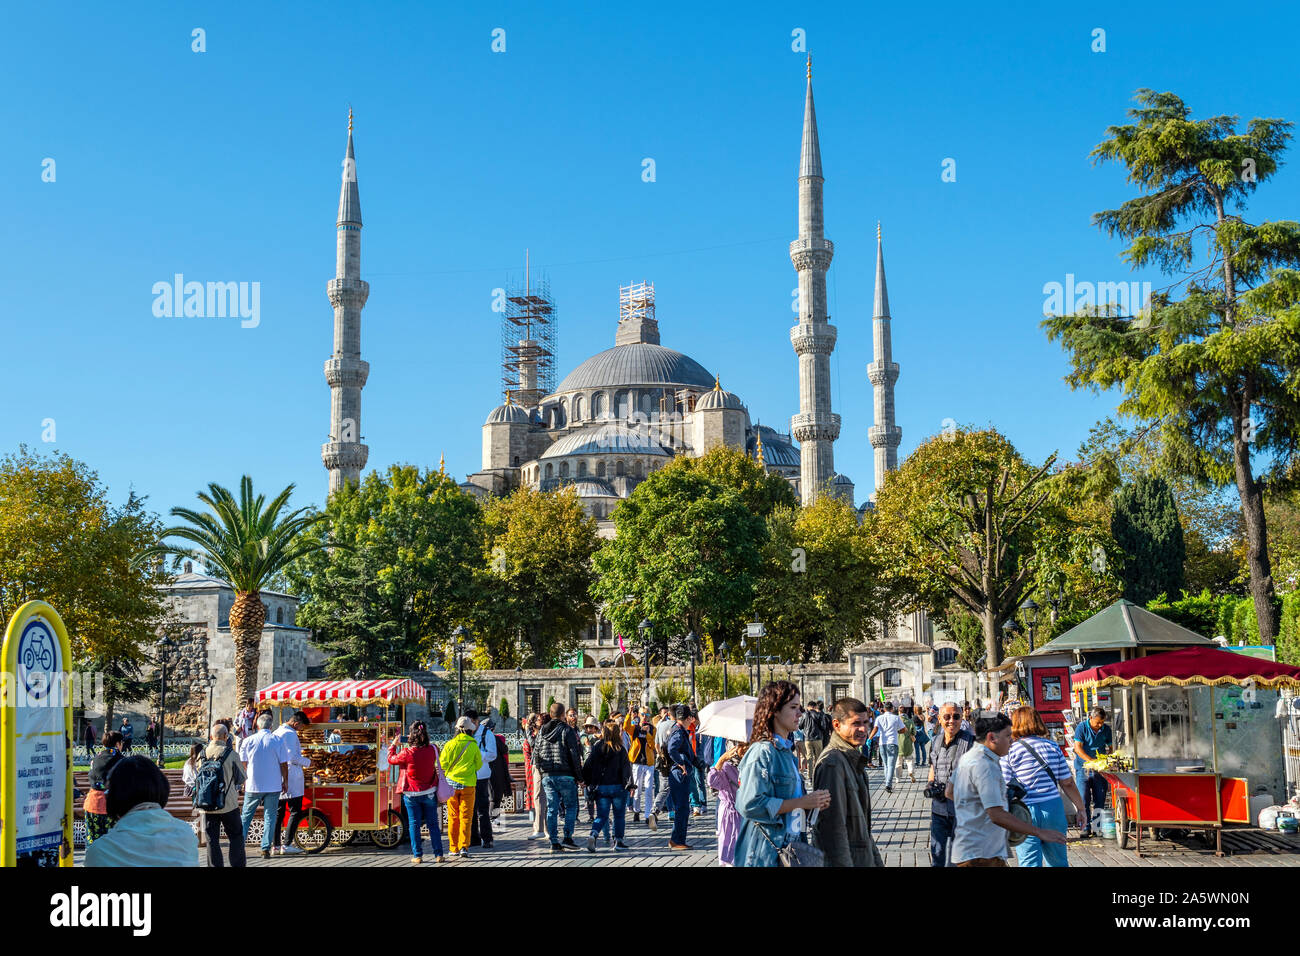 Tourists and local Turks enjoy a sunny day in Sultanahmet Square among the roasted corn cob food vendor stands and the Blue Mosque behind Stock Photo